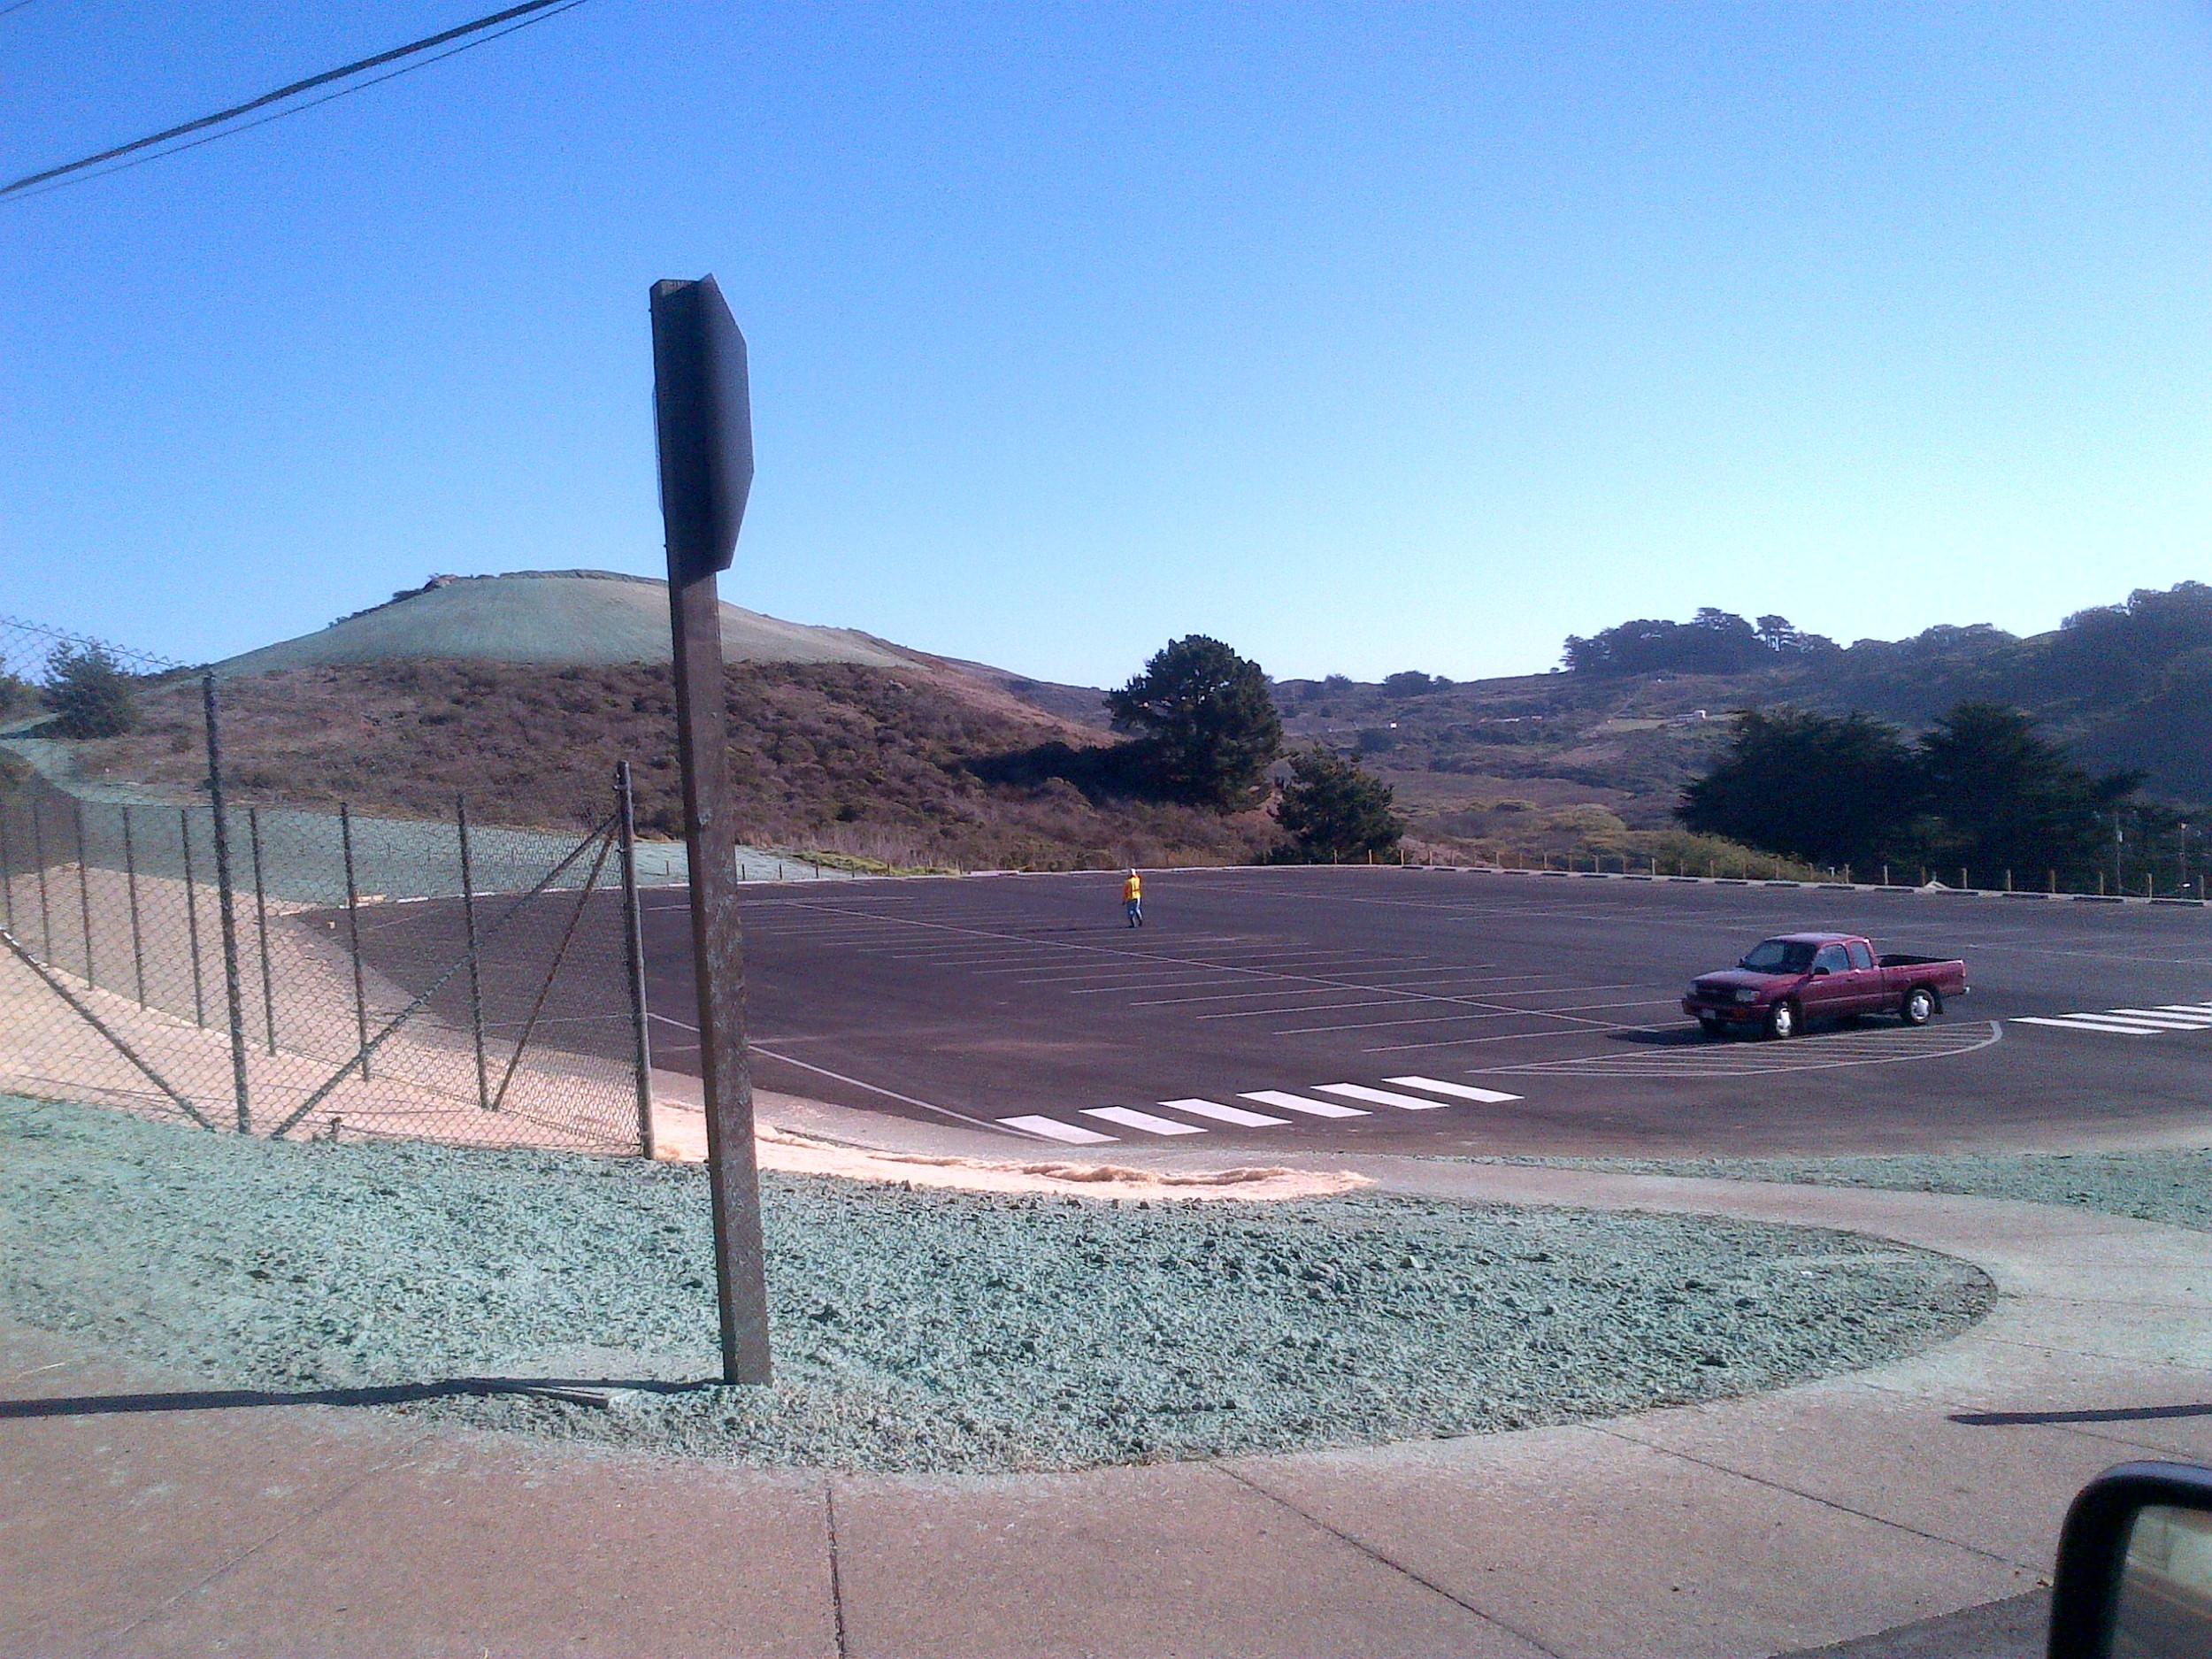 New Marine Mammal Center Parking Lot with restore quarry fill in background